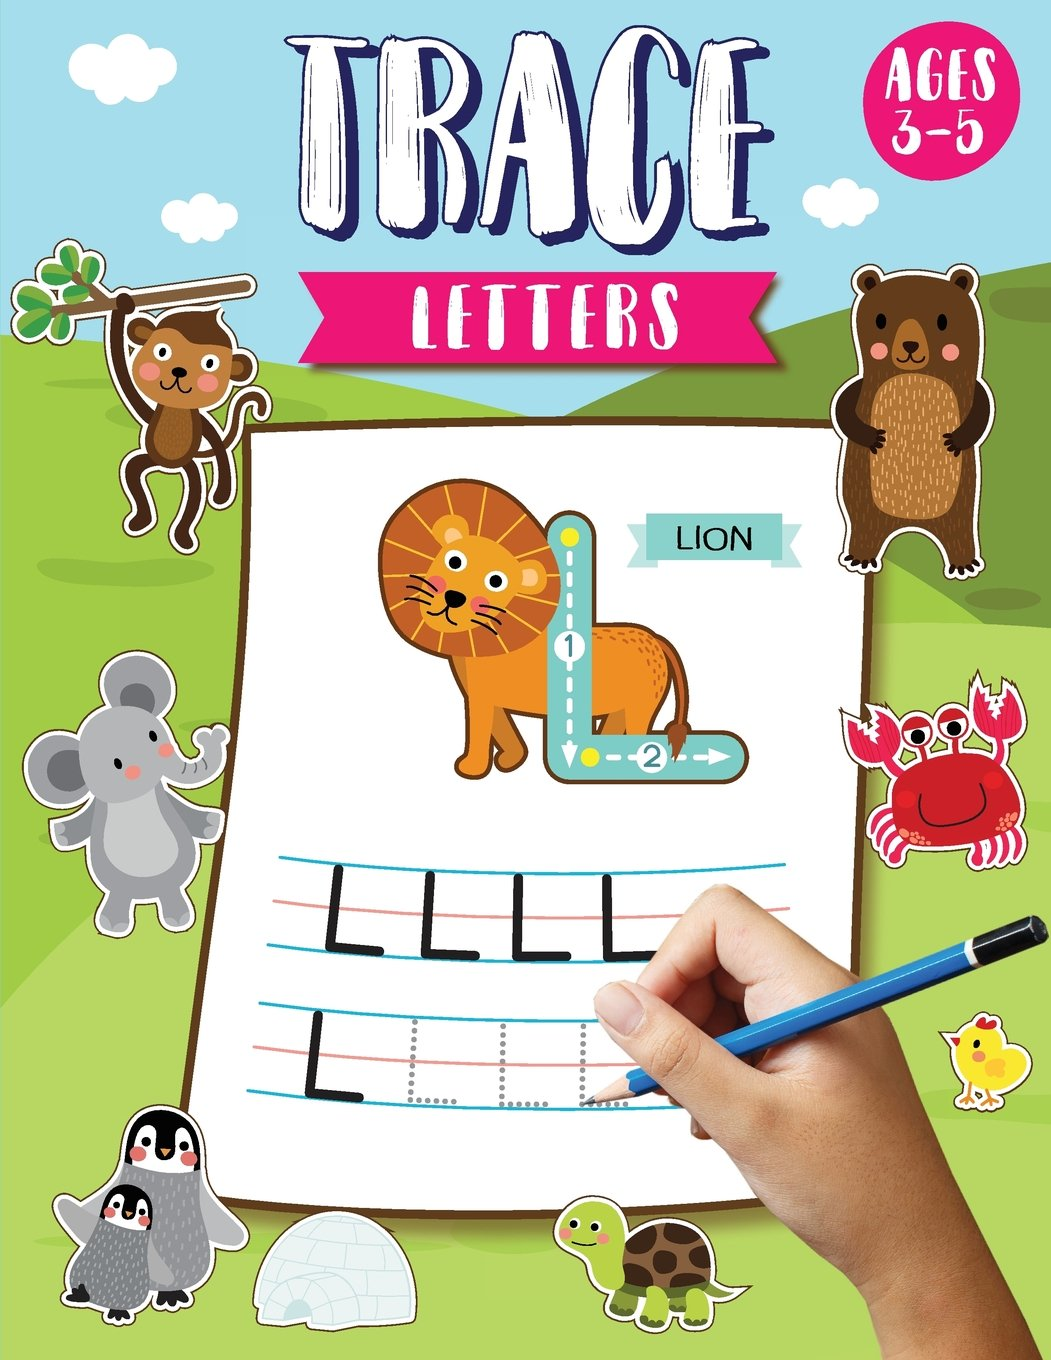 Read Online Trace Letters Ages 3-5: Alphabet Tracing Letters Workbook (Preschool) - Letter Tracing Books for Kids Ages 3-5 : (Large Print Size 8.5x11 inches) pdf